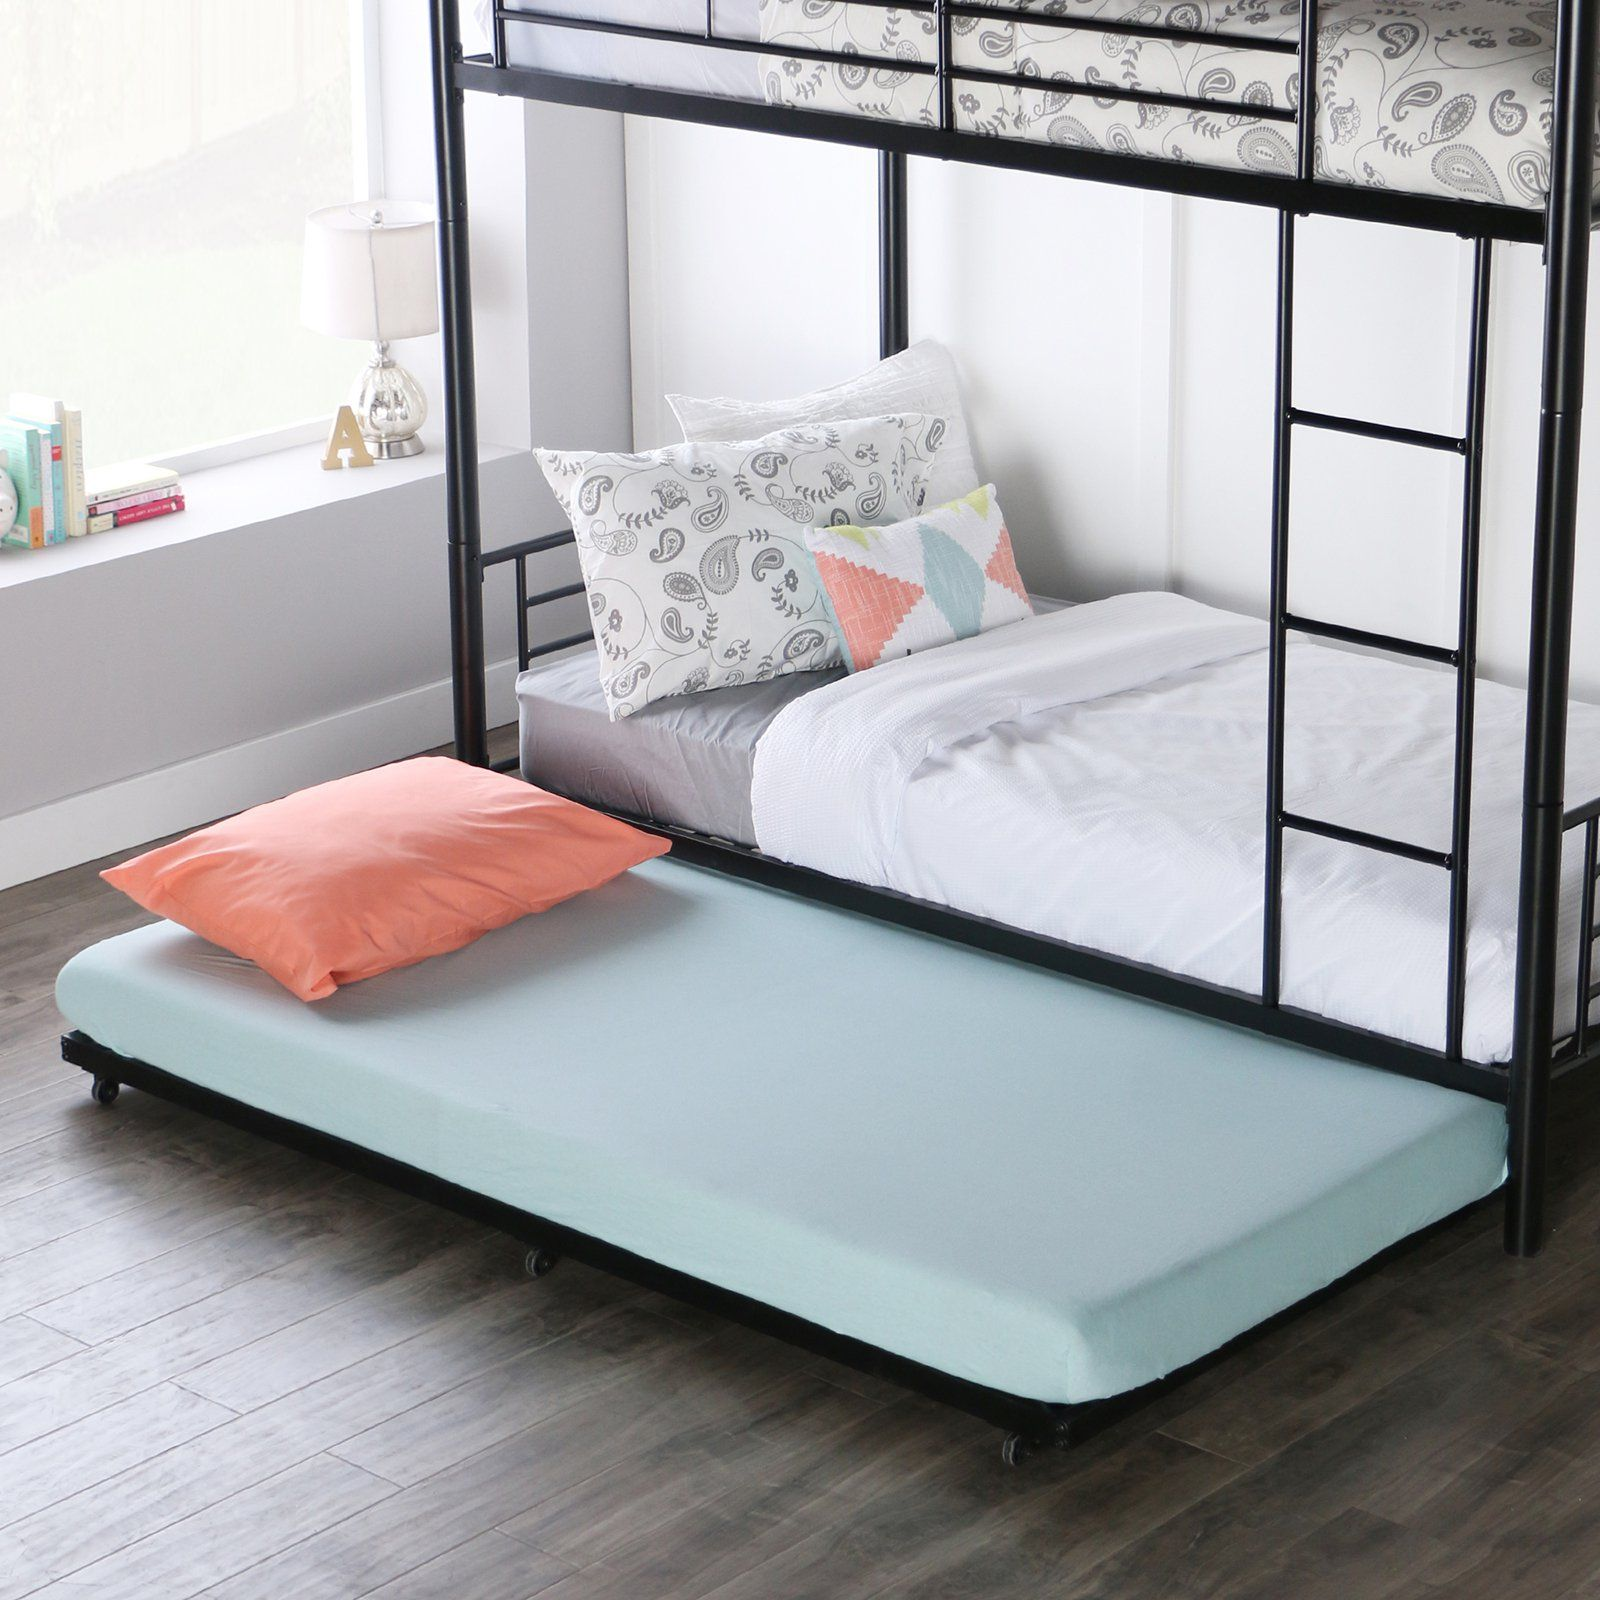 Twin RollOut Trundle Bed Frame Trundle bed frame, Twin